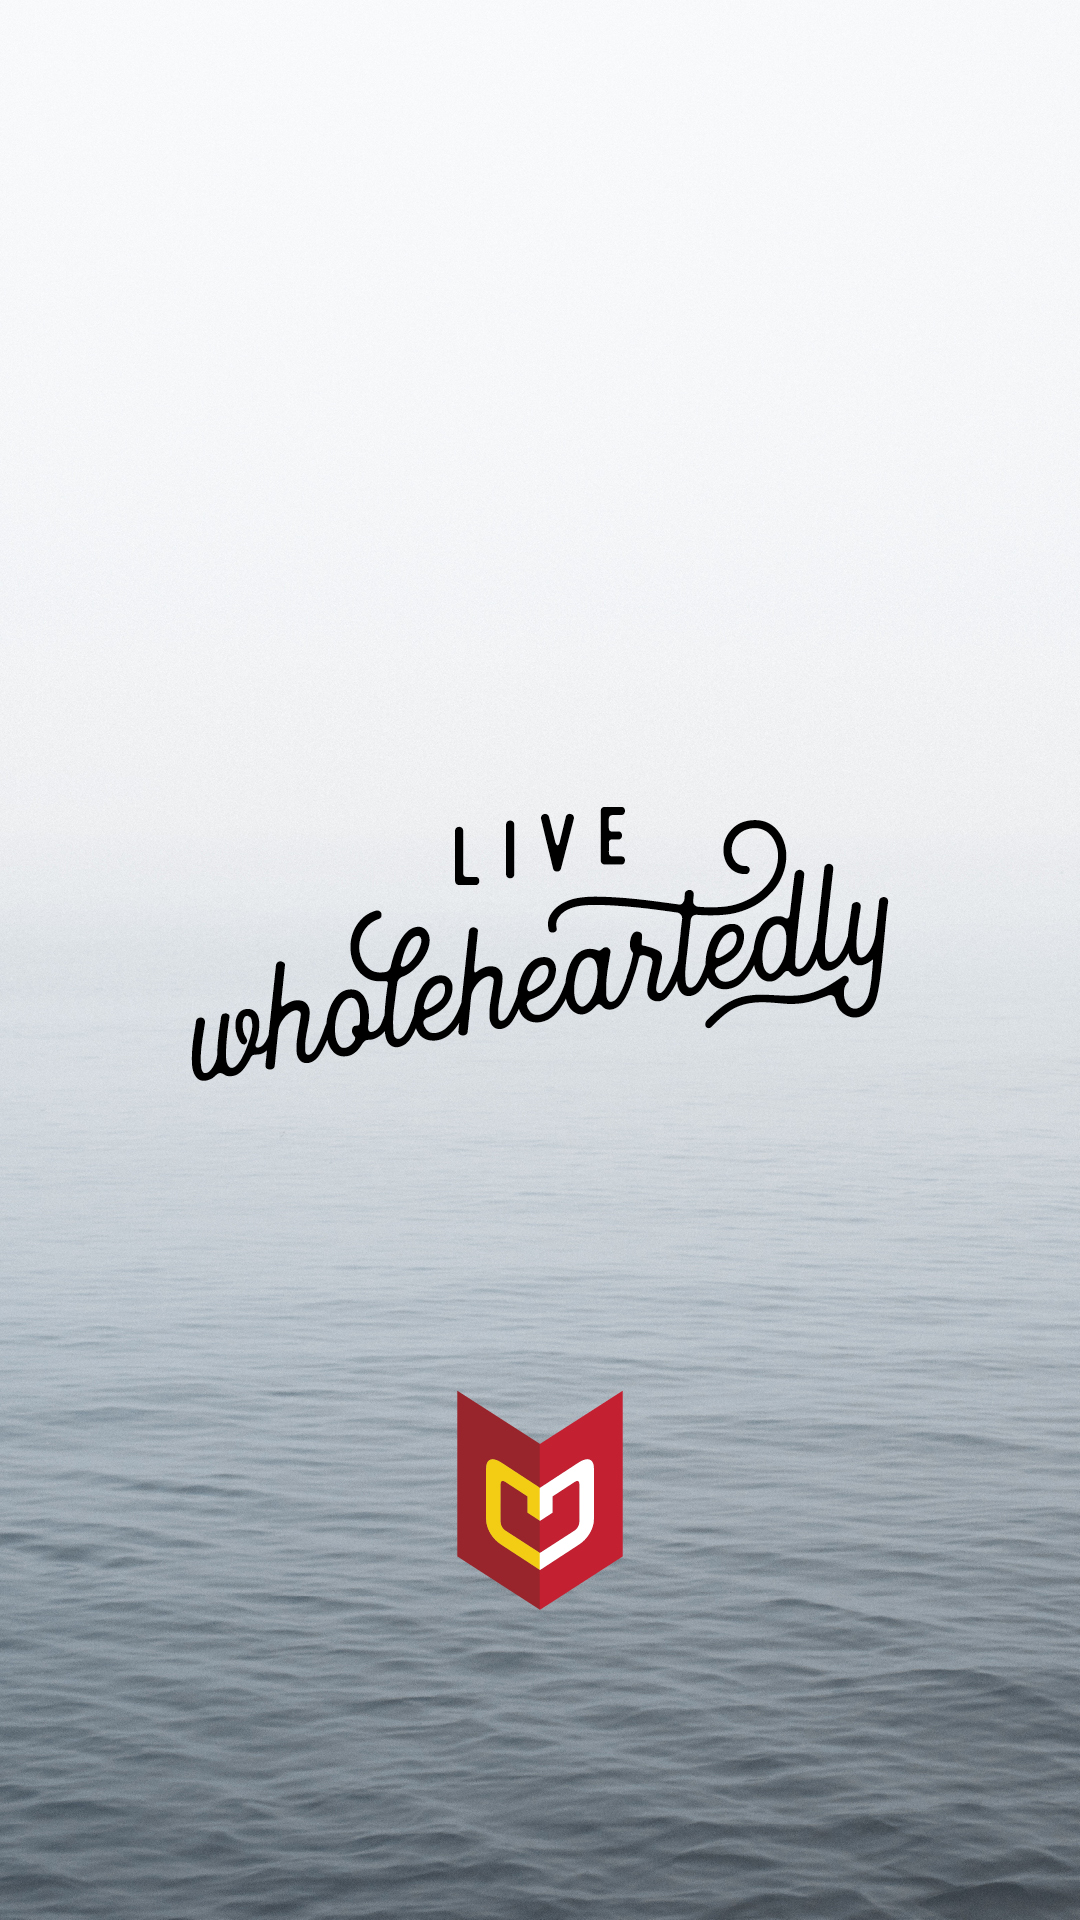 Calm ocean scene with words Live Wholeheartedly